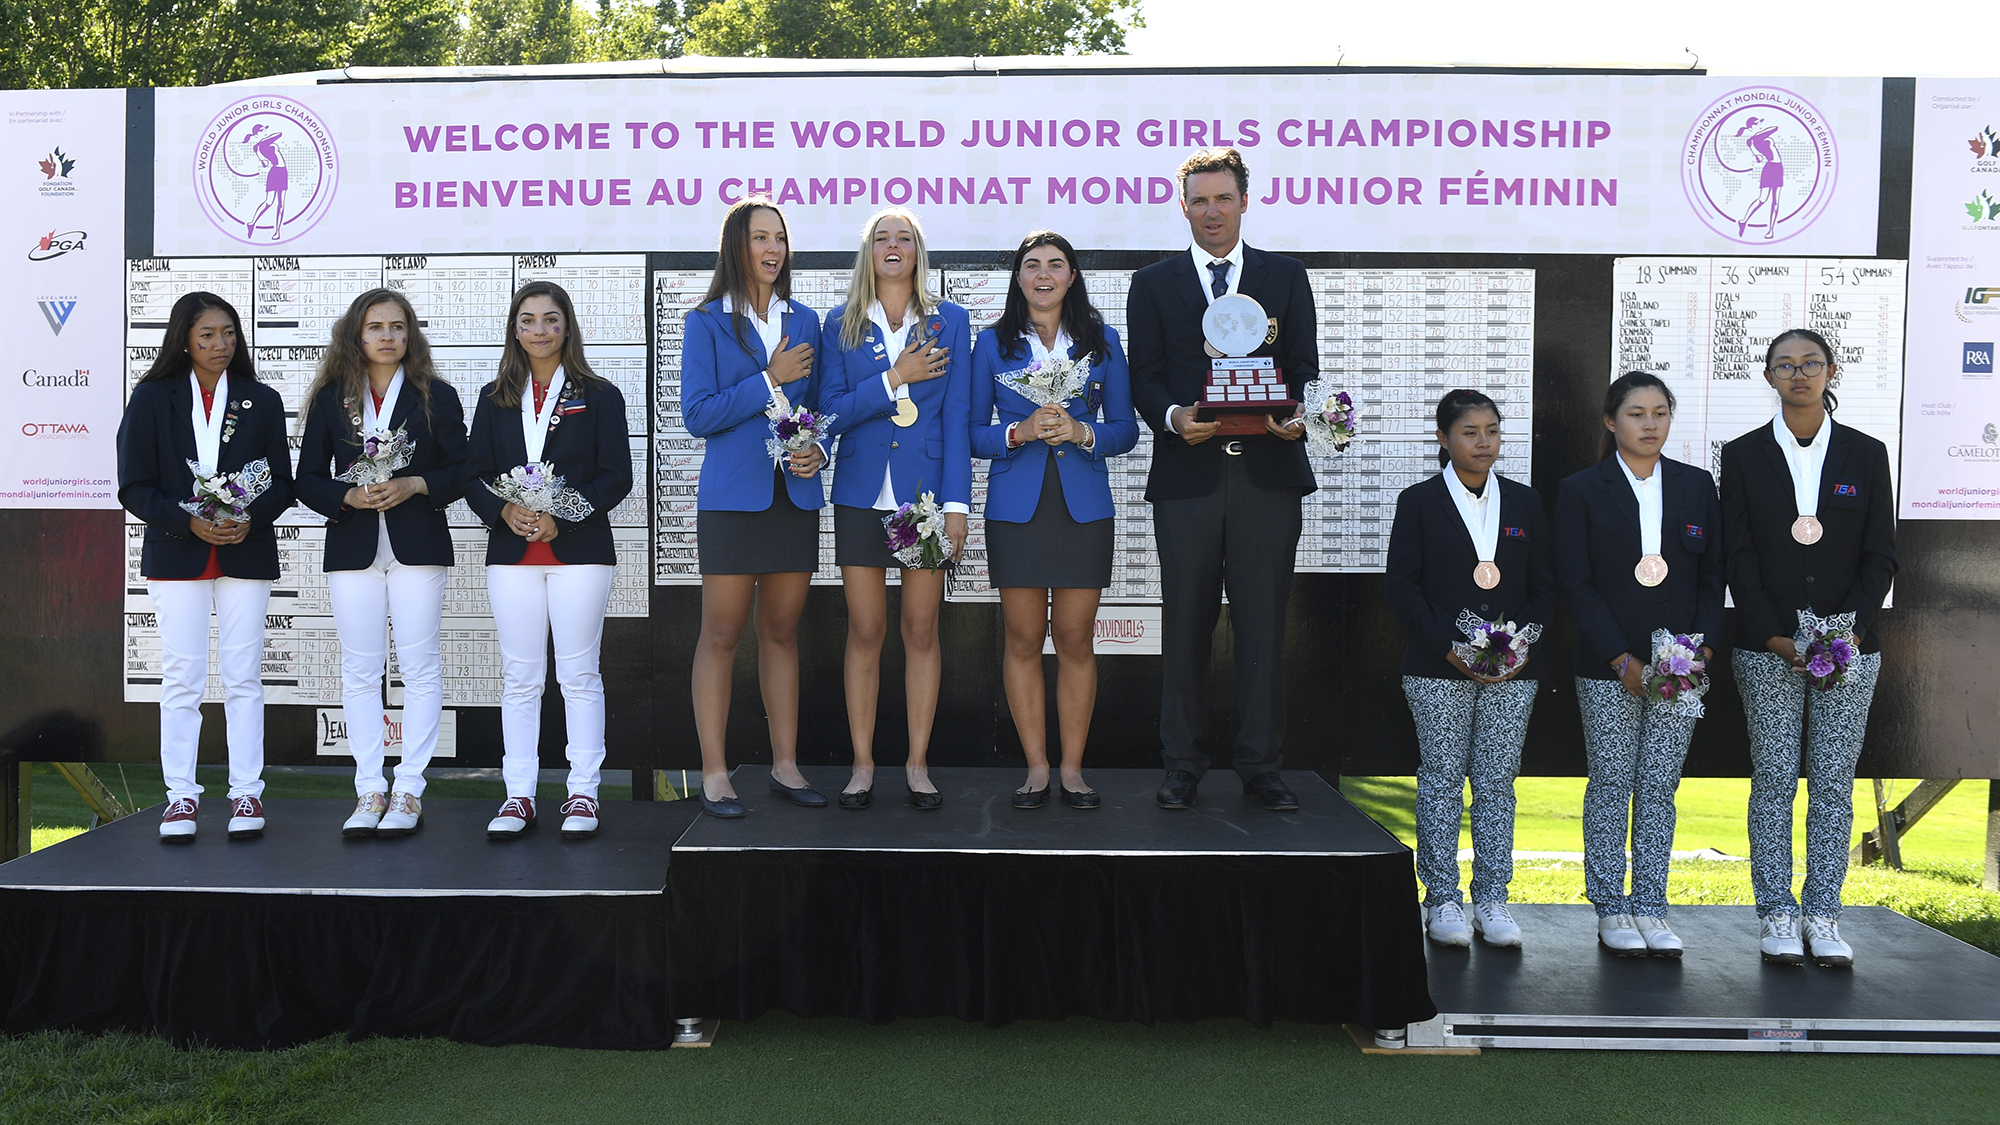 2018 World Junior Girls Championship